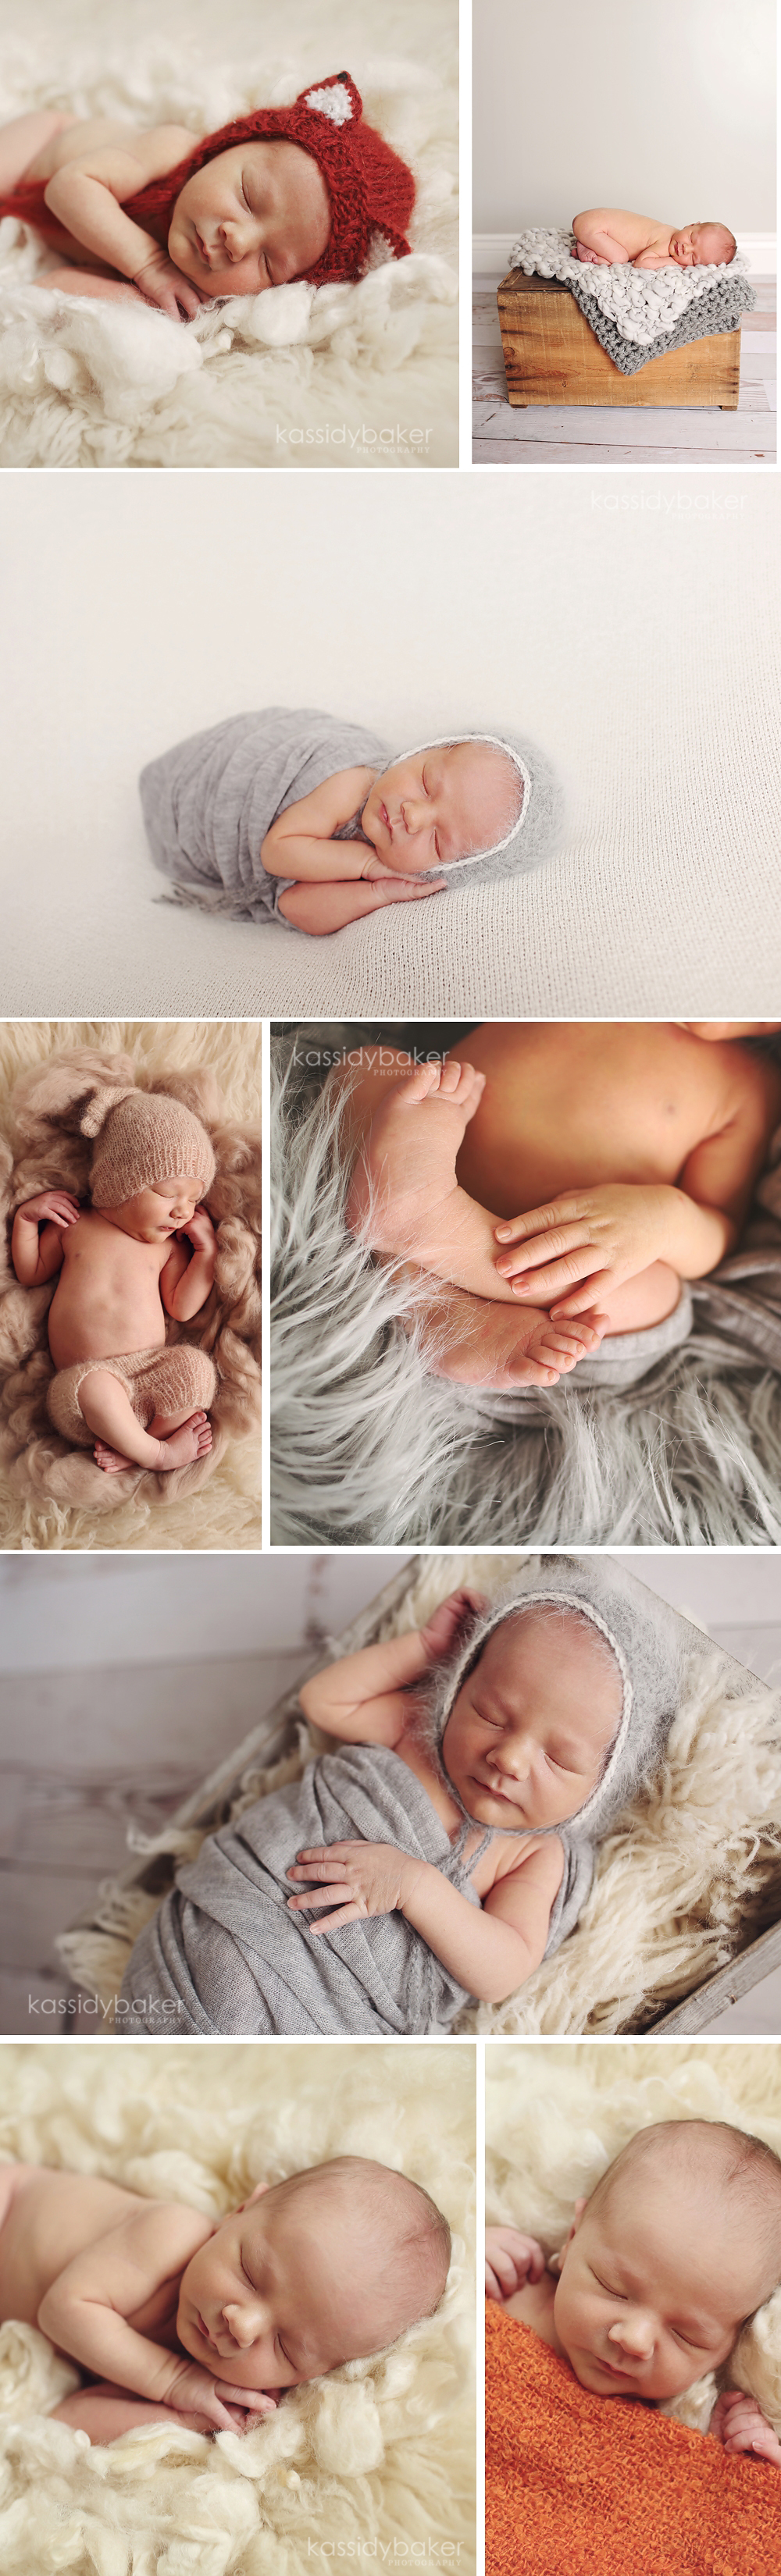 newborn photographer st george utah